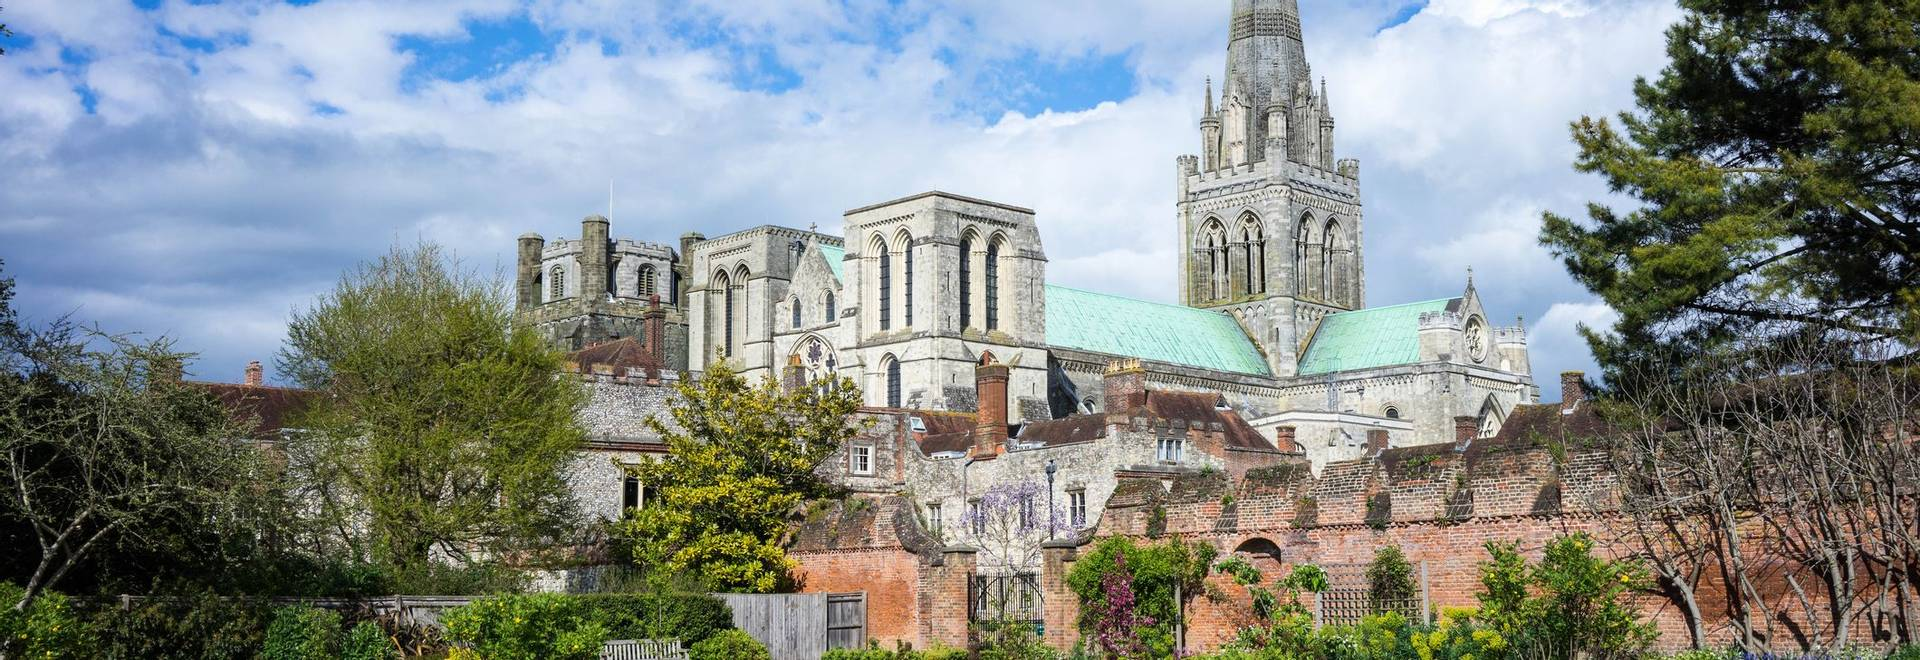 Chichester Cathedral and the Bishops Gardens, Chichester, West Sussex